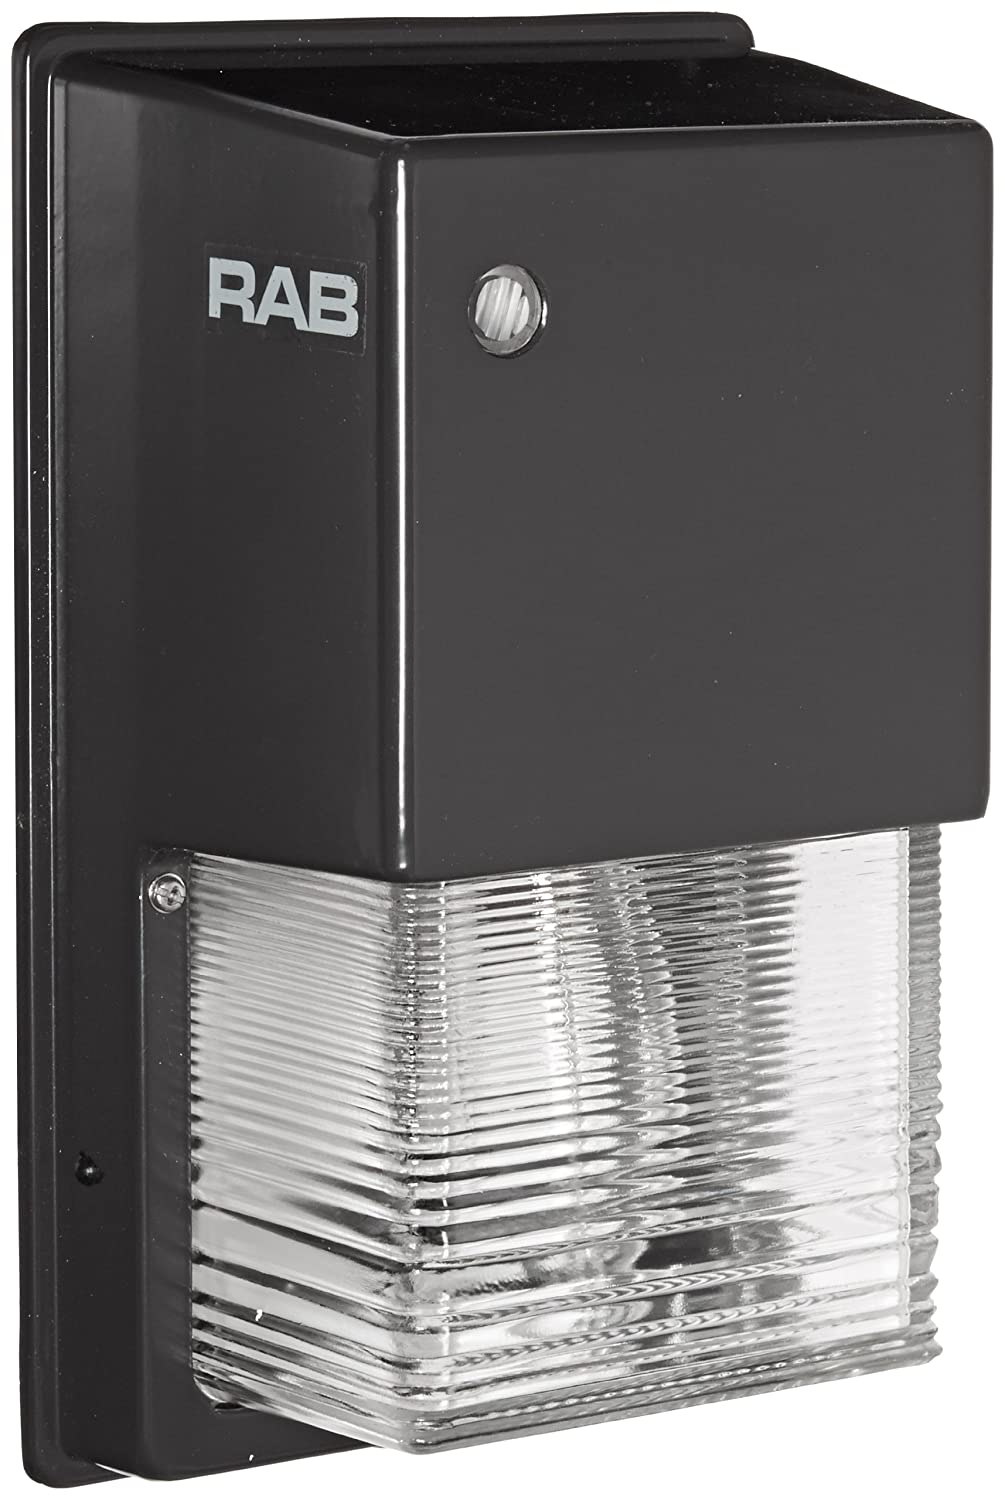 RAB Lighting WPTGSN70 Tallpack High Pressure Sodium Lamp with Prismatic Glass Refractor, ED17 Type, 70W Power, 6300 Lumens, 120V, Bronze Color by RAB Lighting  B0027OY1AW